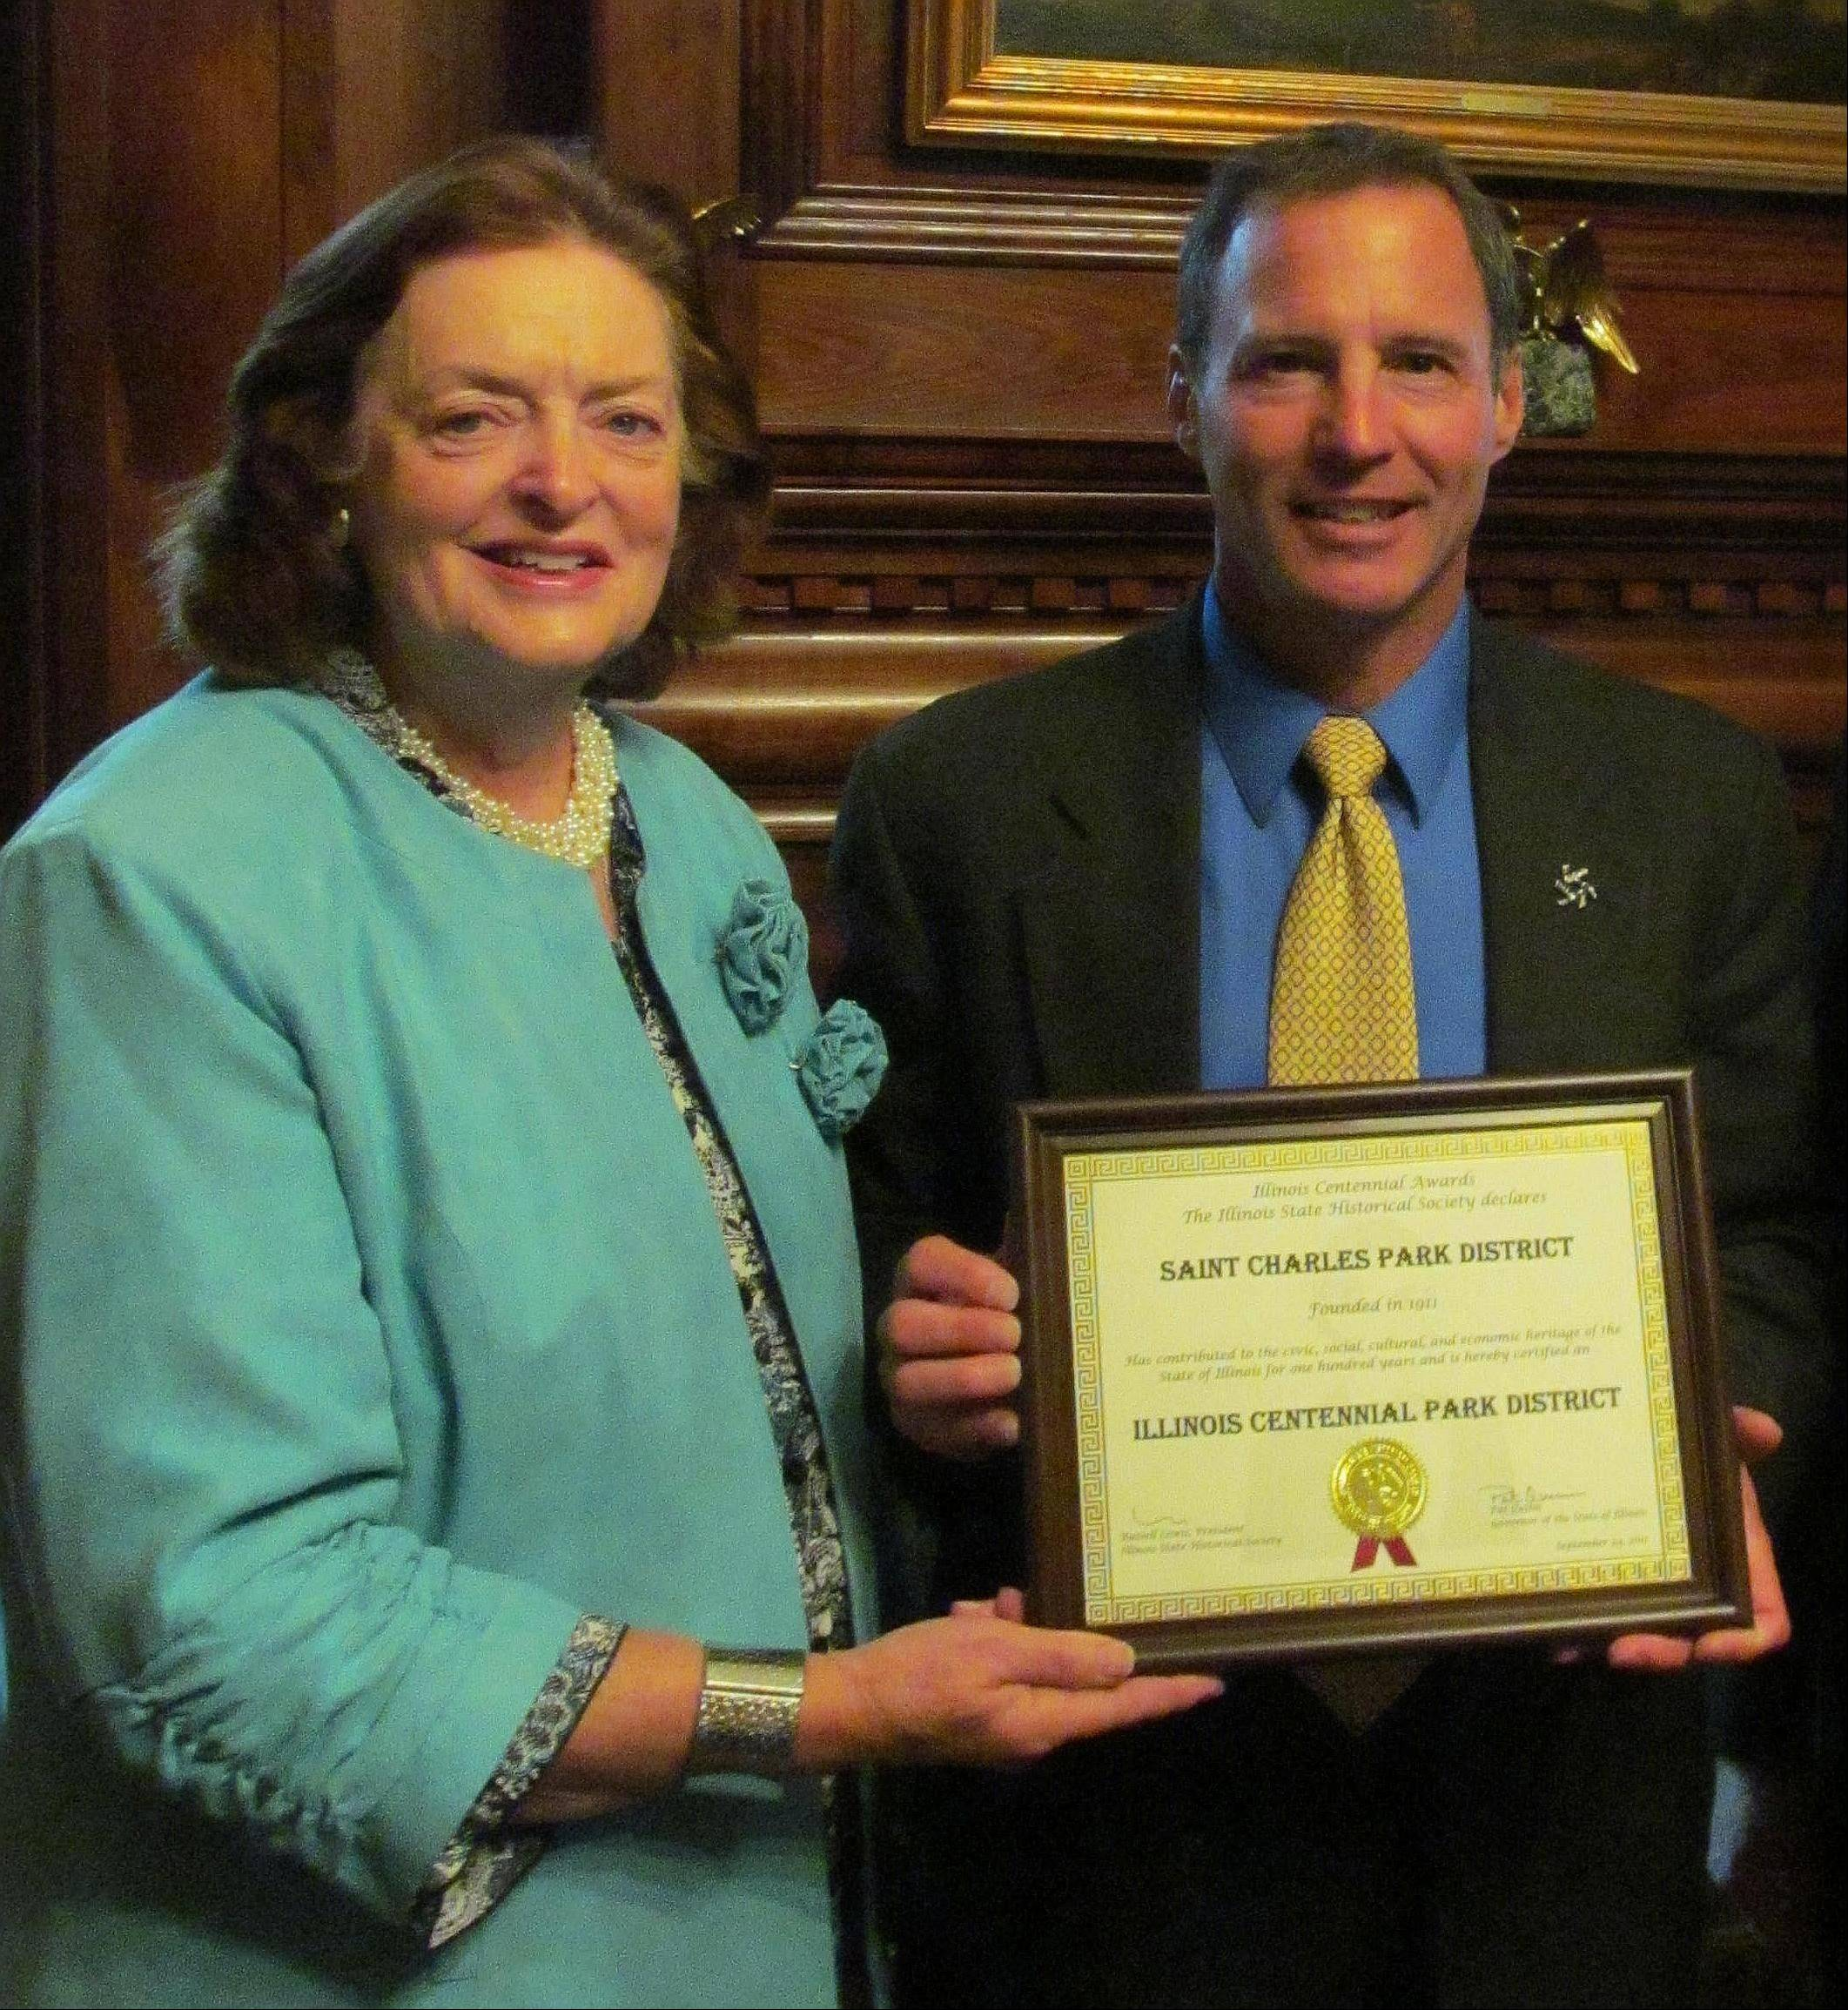 Illinois State Historical Society representative Connie Speck presents St. Charles Park District Executive Director Ray Ochromowicz with a centennial award.